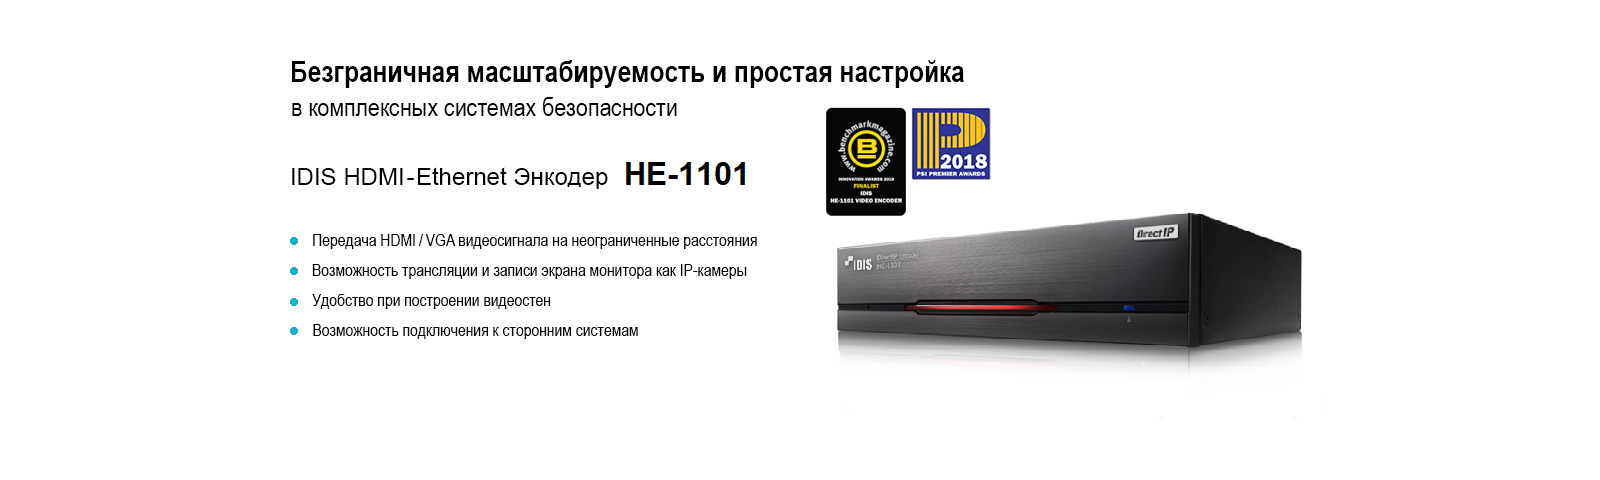 IDIS HDMI — Ethernet Энкодер HE-1101